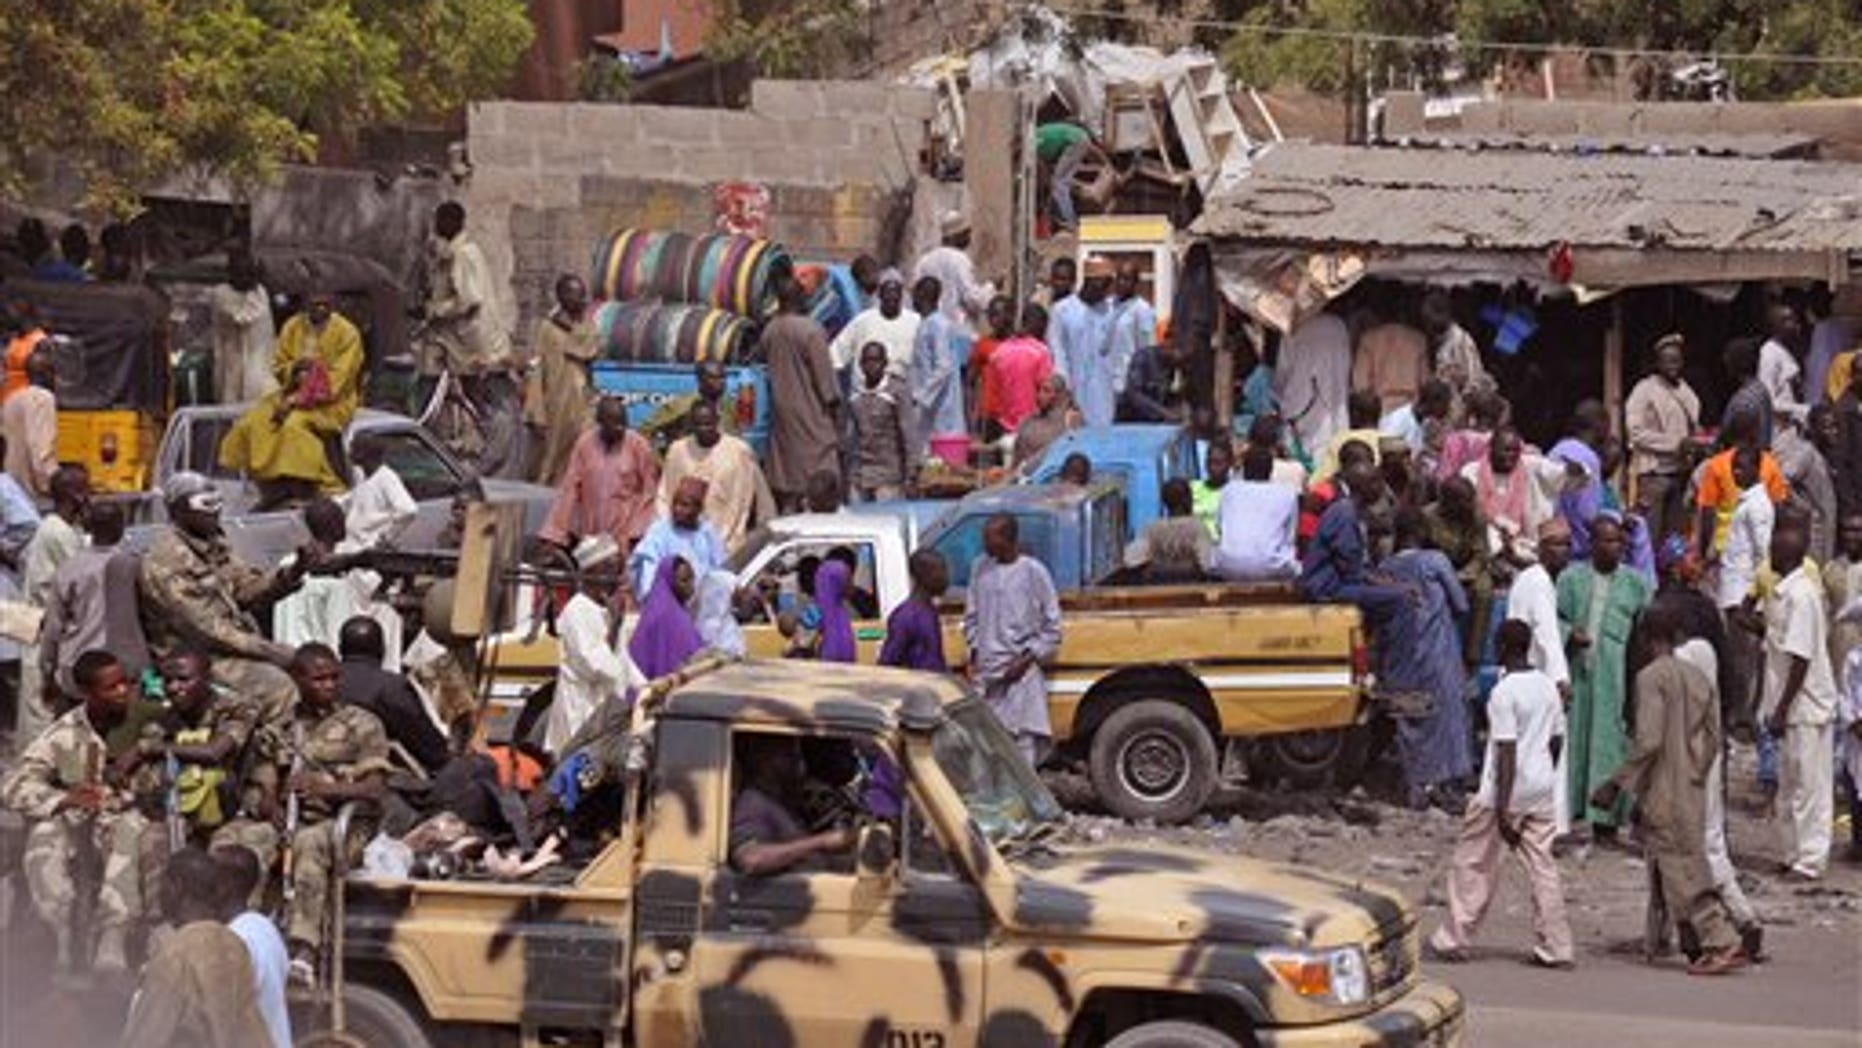 FILE - In this file photo taken Tuesday, Jan. 27, 2015,  Nigerian soldiers, left, pass by on the back of an armed truck as they patrol a local market after . Nigerian jets bomb Boko Haram out of a slew of northeastern Nigerian towns and villages.  (AP Photo/Jossy Ola, File)